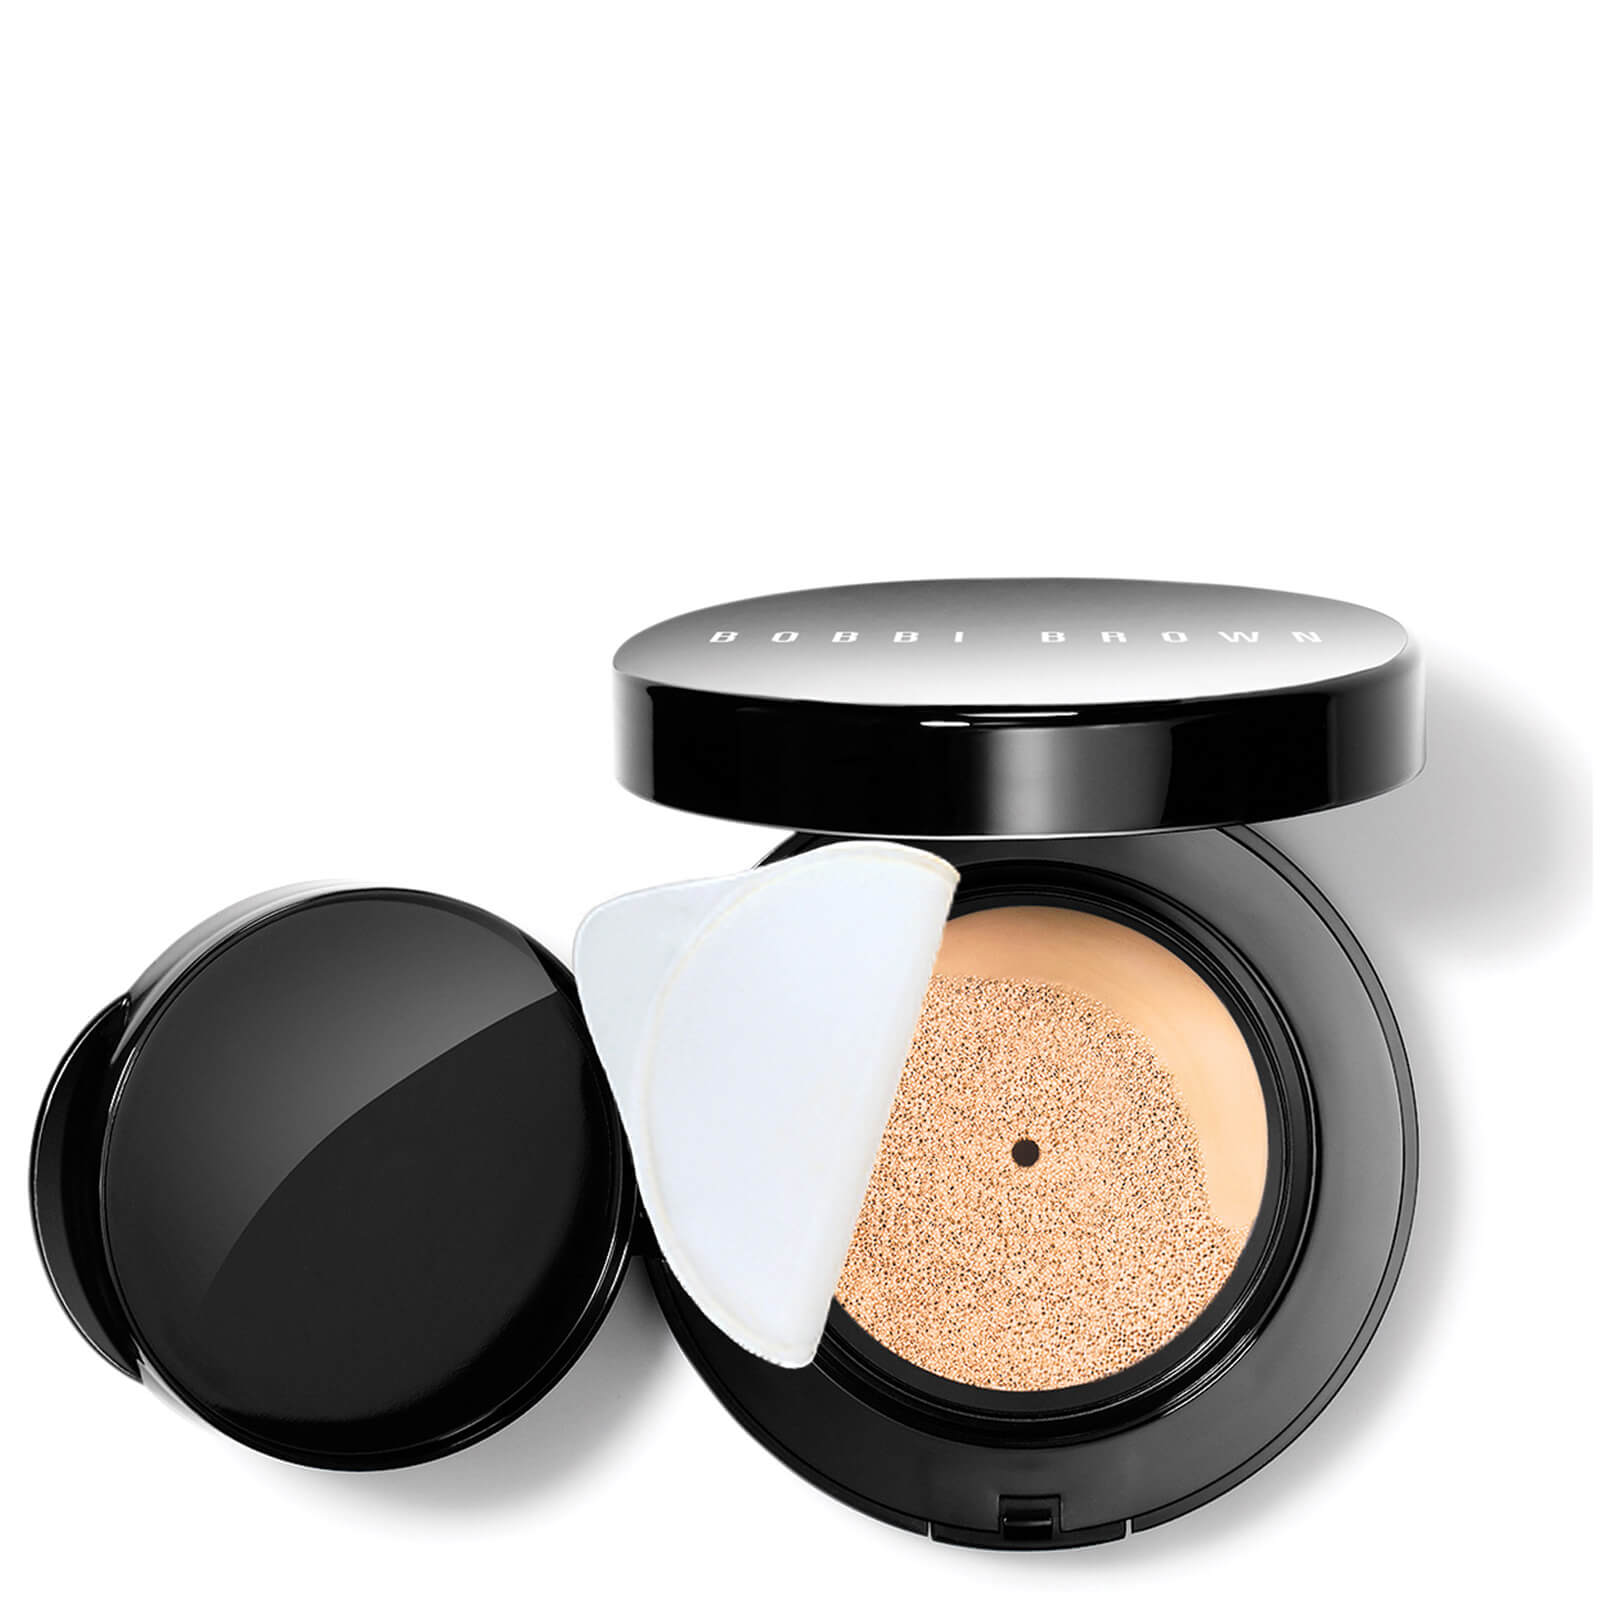 Bobbi Brown Skin Foundation Cushion Compact Spf35 Pre Filled Various Shades